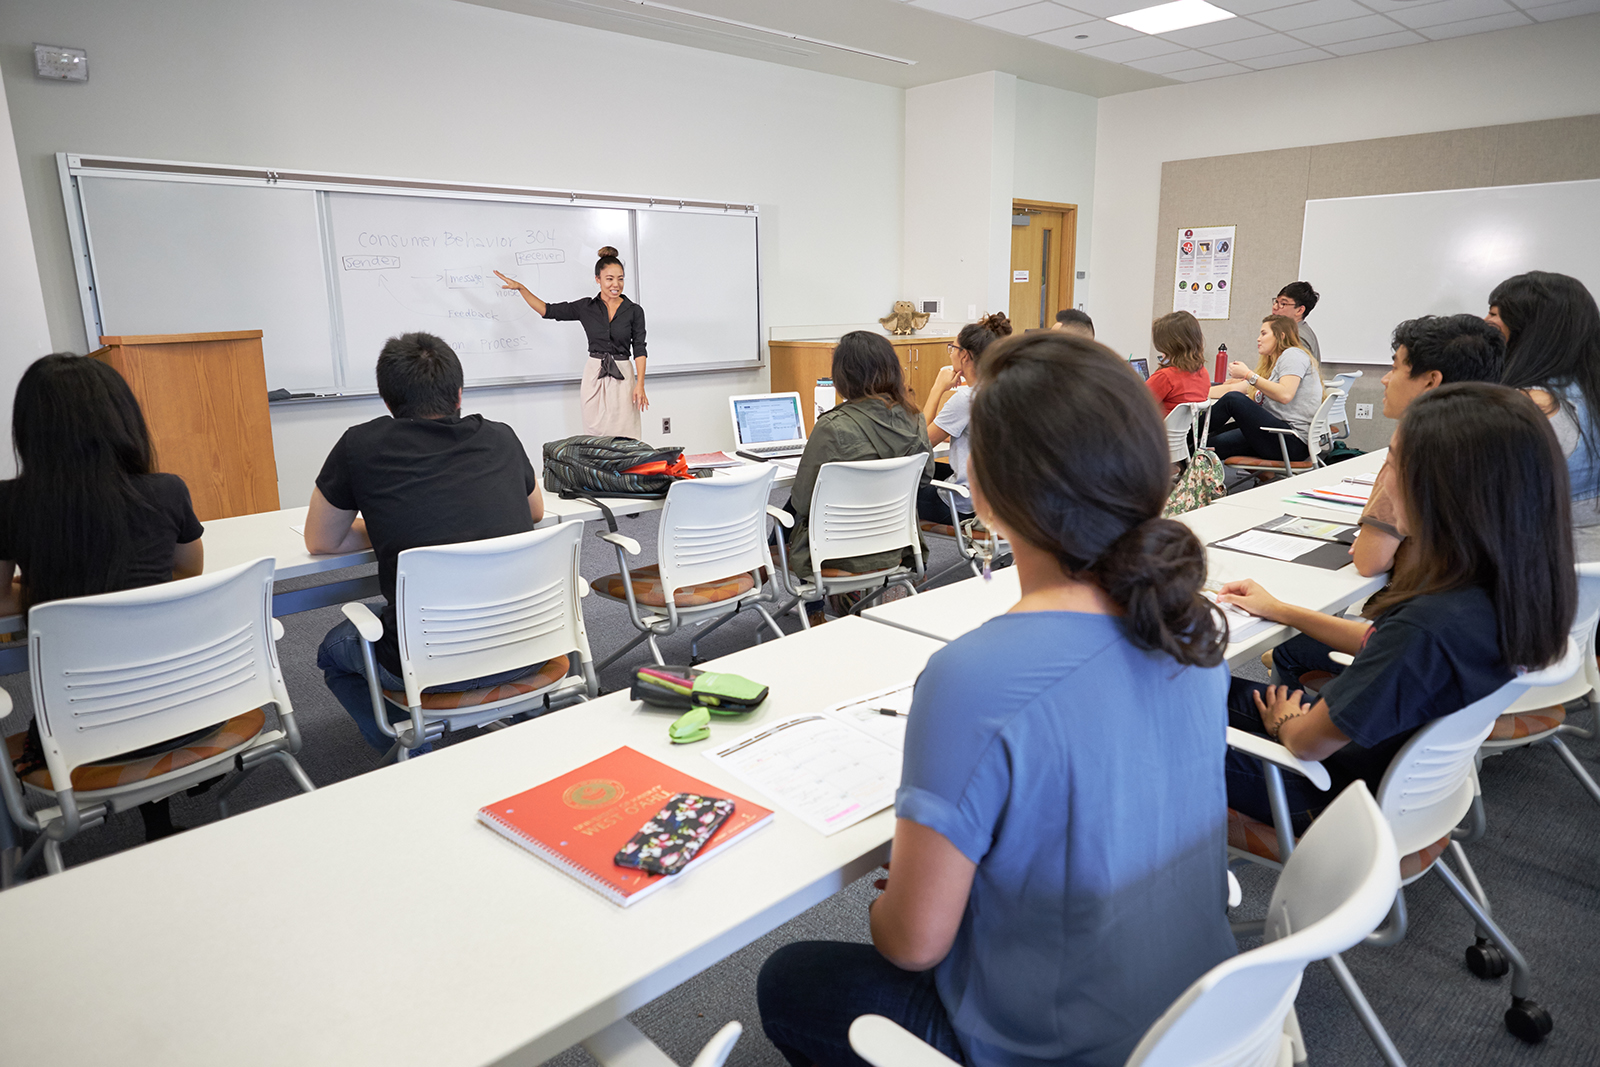 Professor Itoga lecturing in her classroom.